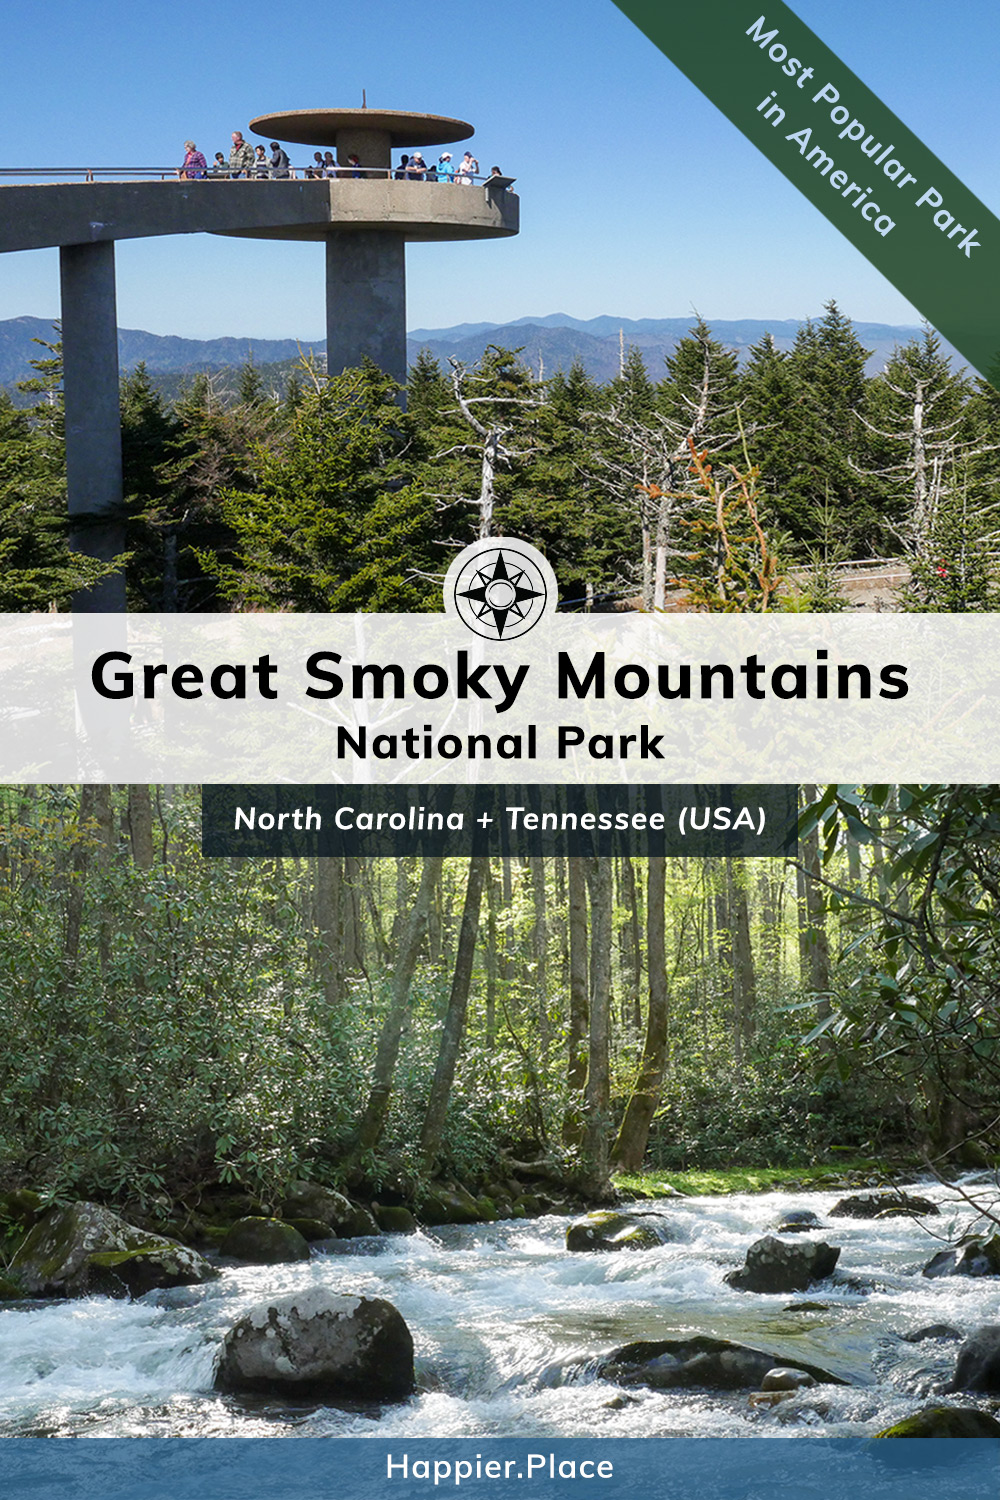 Most Popular: Great Smoky Mountains National Park (North Carolina + Tennessee)